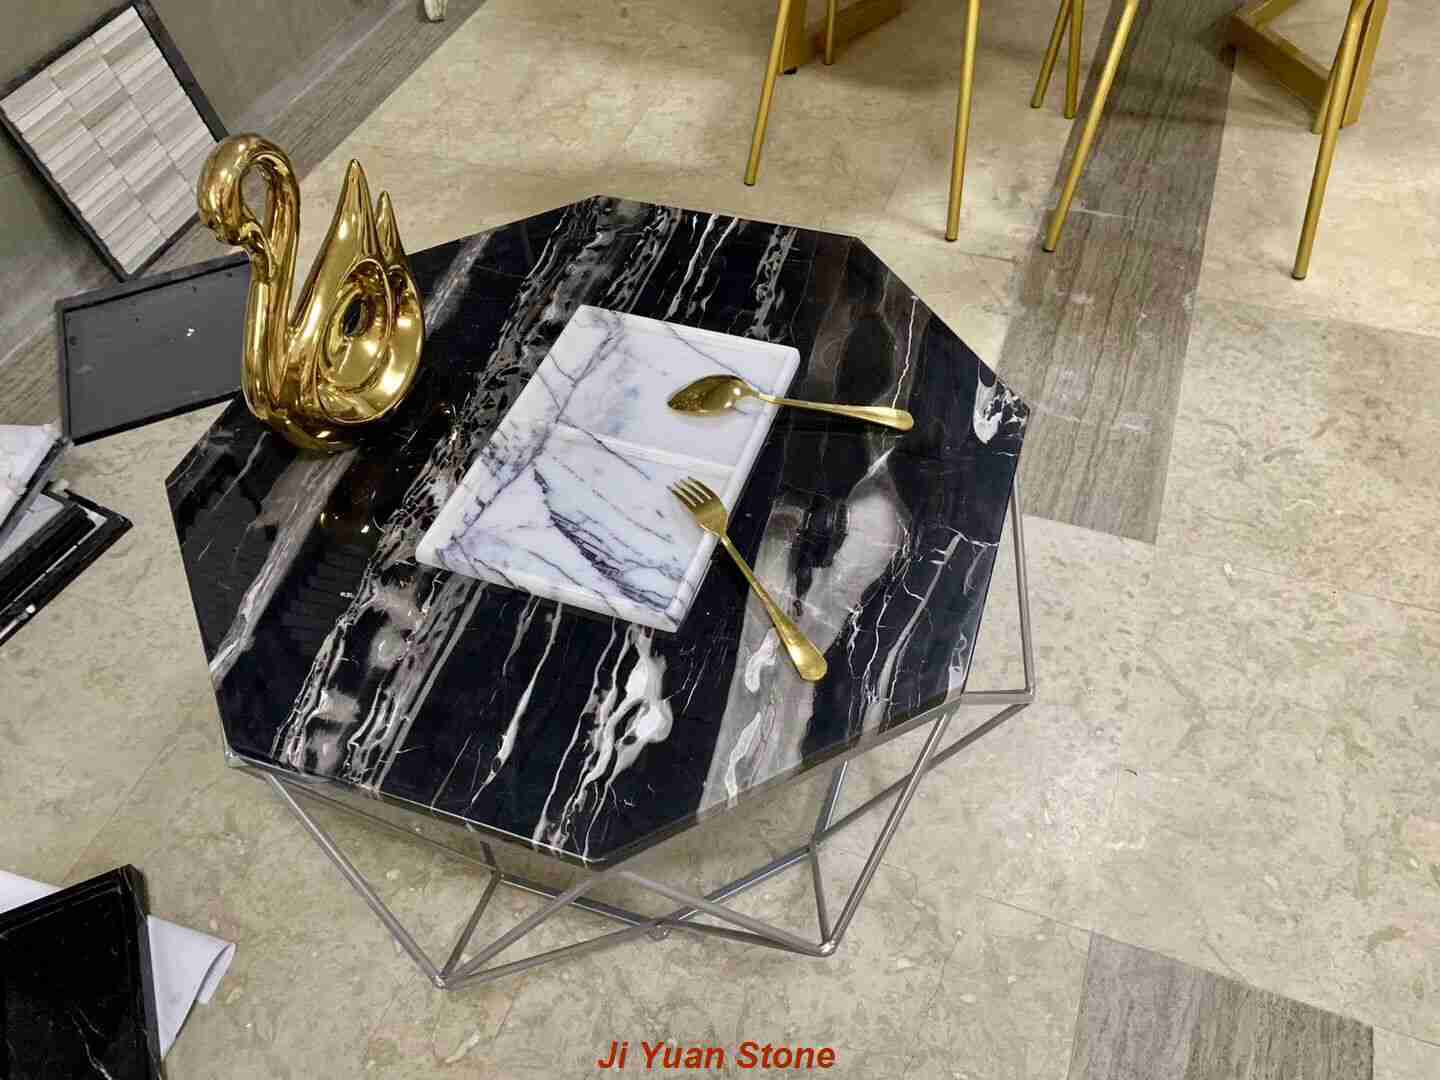 Rectangle marble table,marble top cafe table,rectangular marble dining table,carrera marble dining table,extendable marble dining table,marble counter table